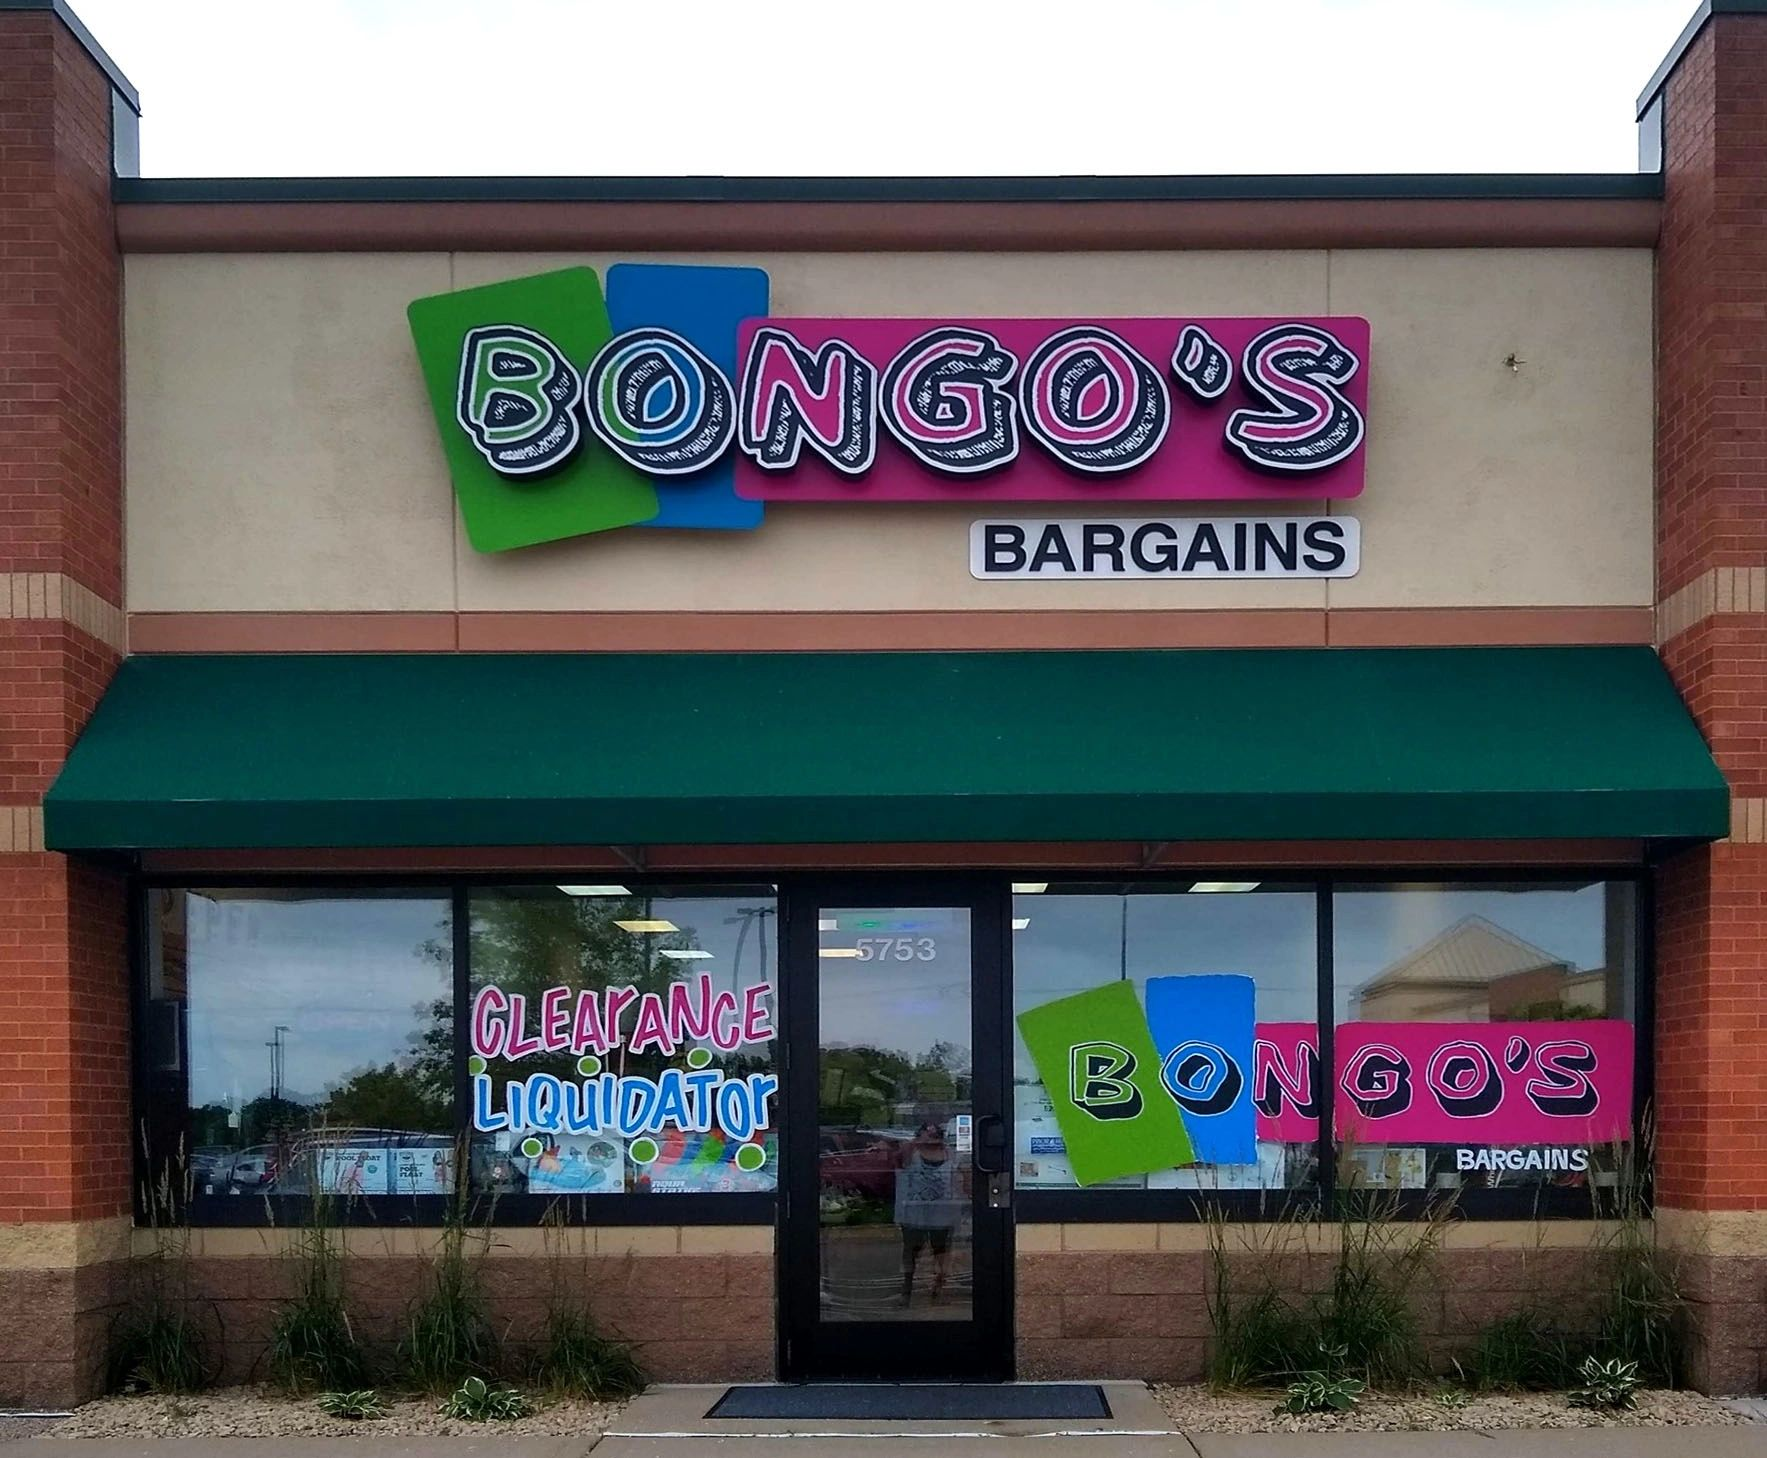 Bongo's Bargains storefront in Savage MN